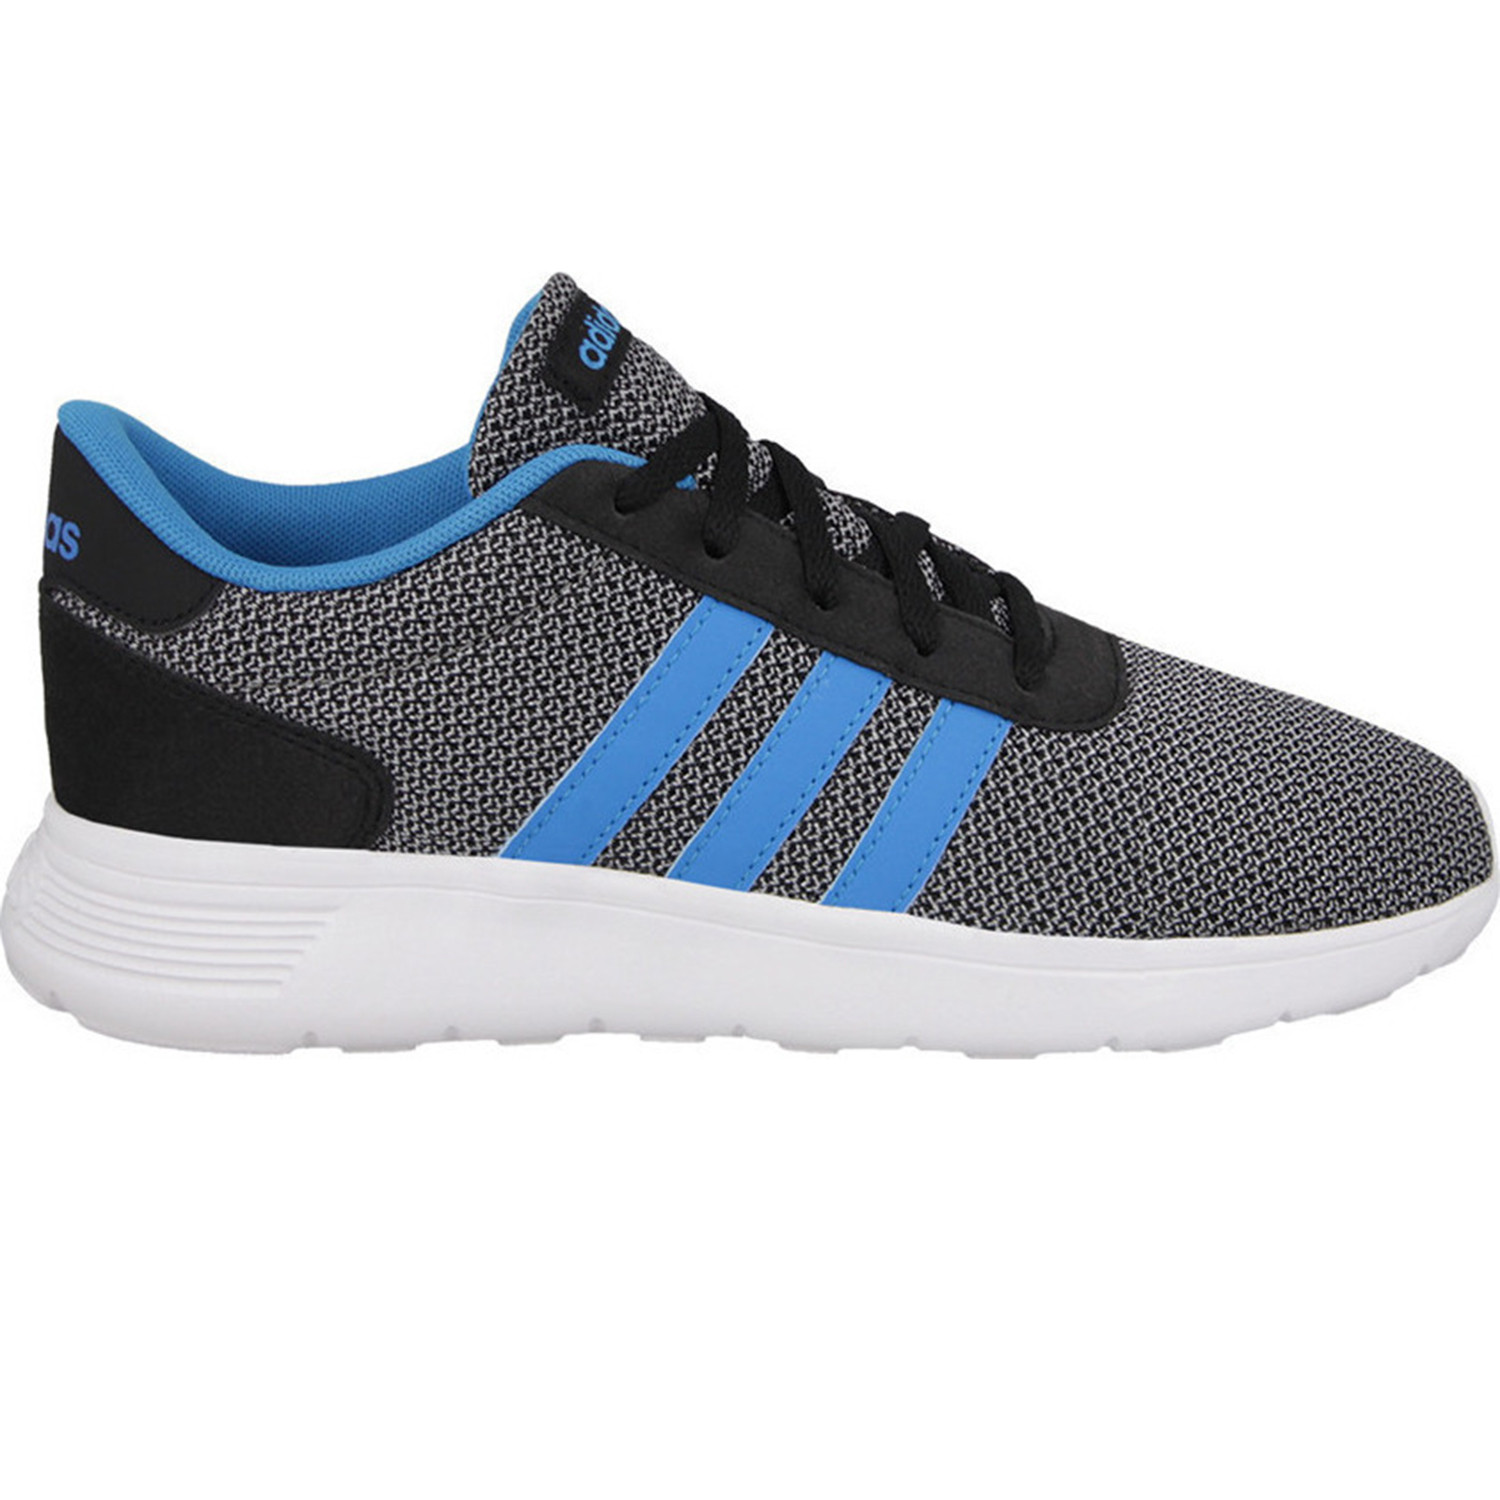 Adidas Lite Racer Chaussures Filles Pas Cher Chaussures